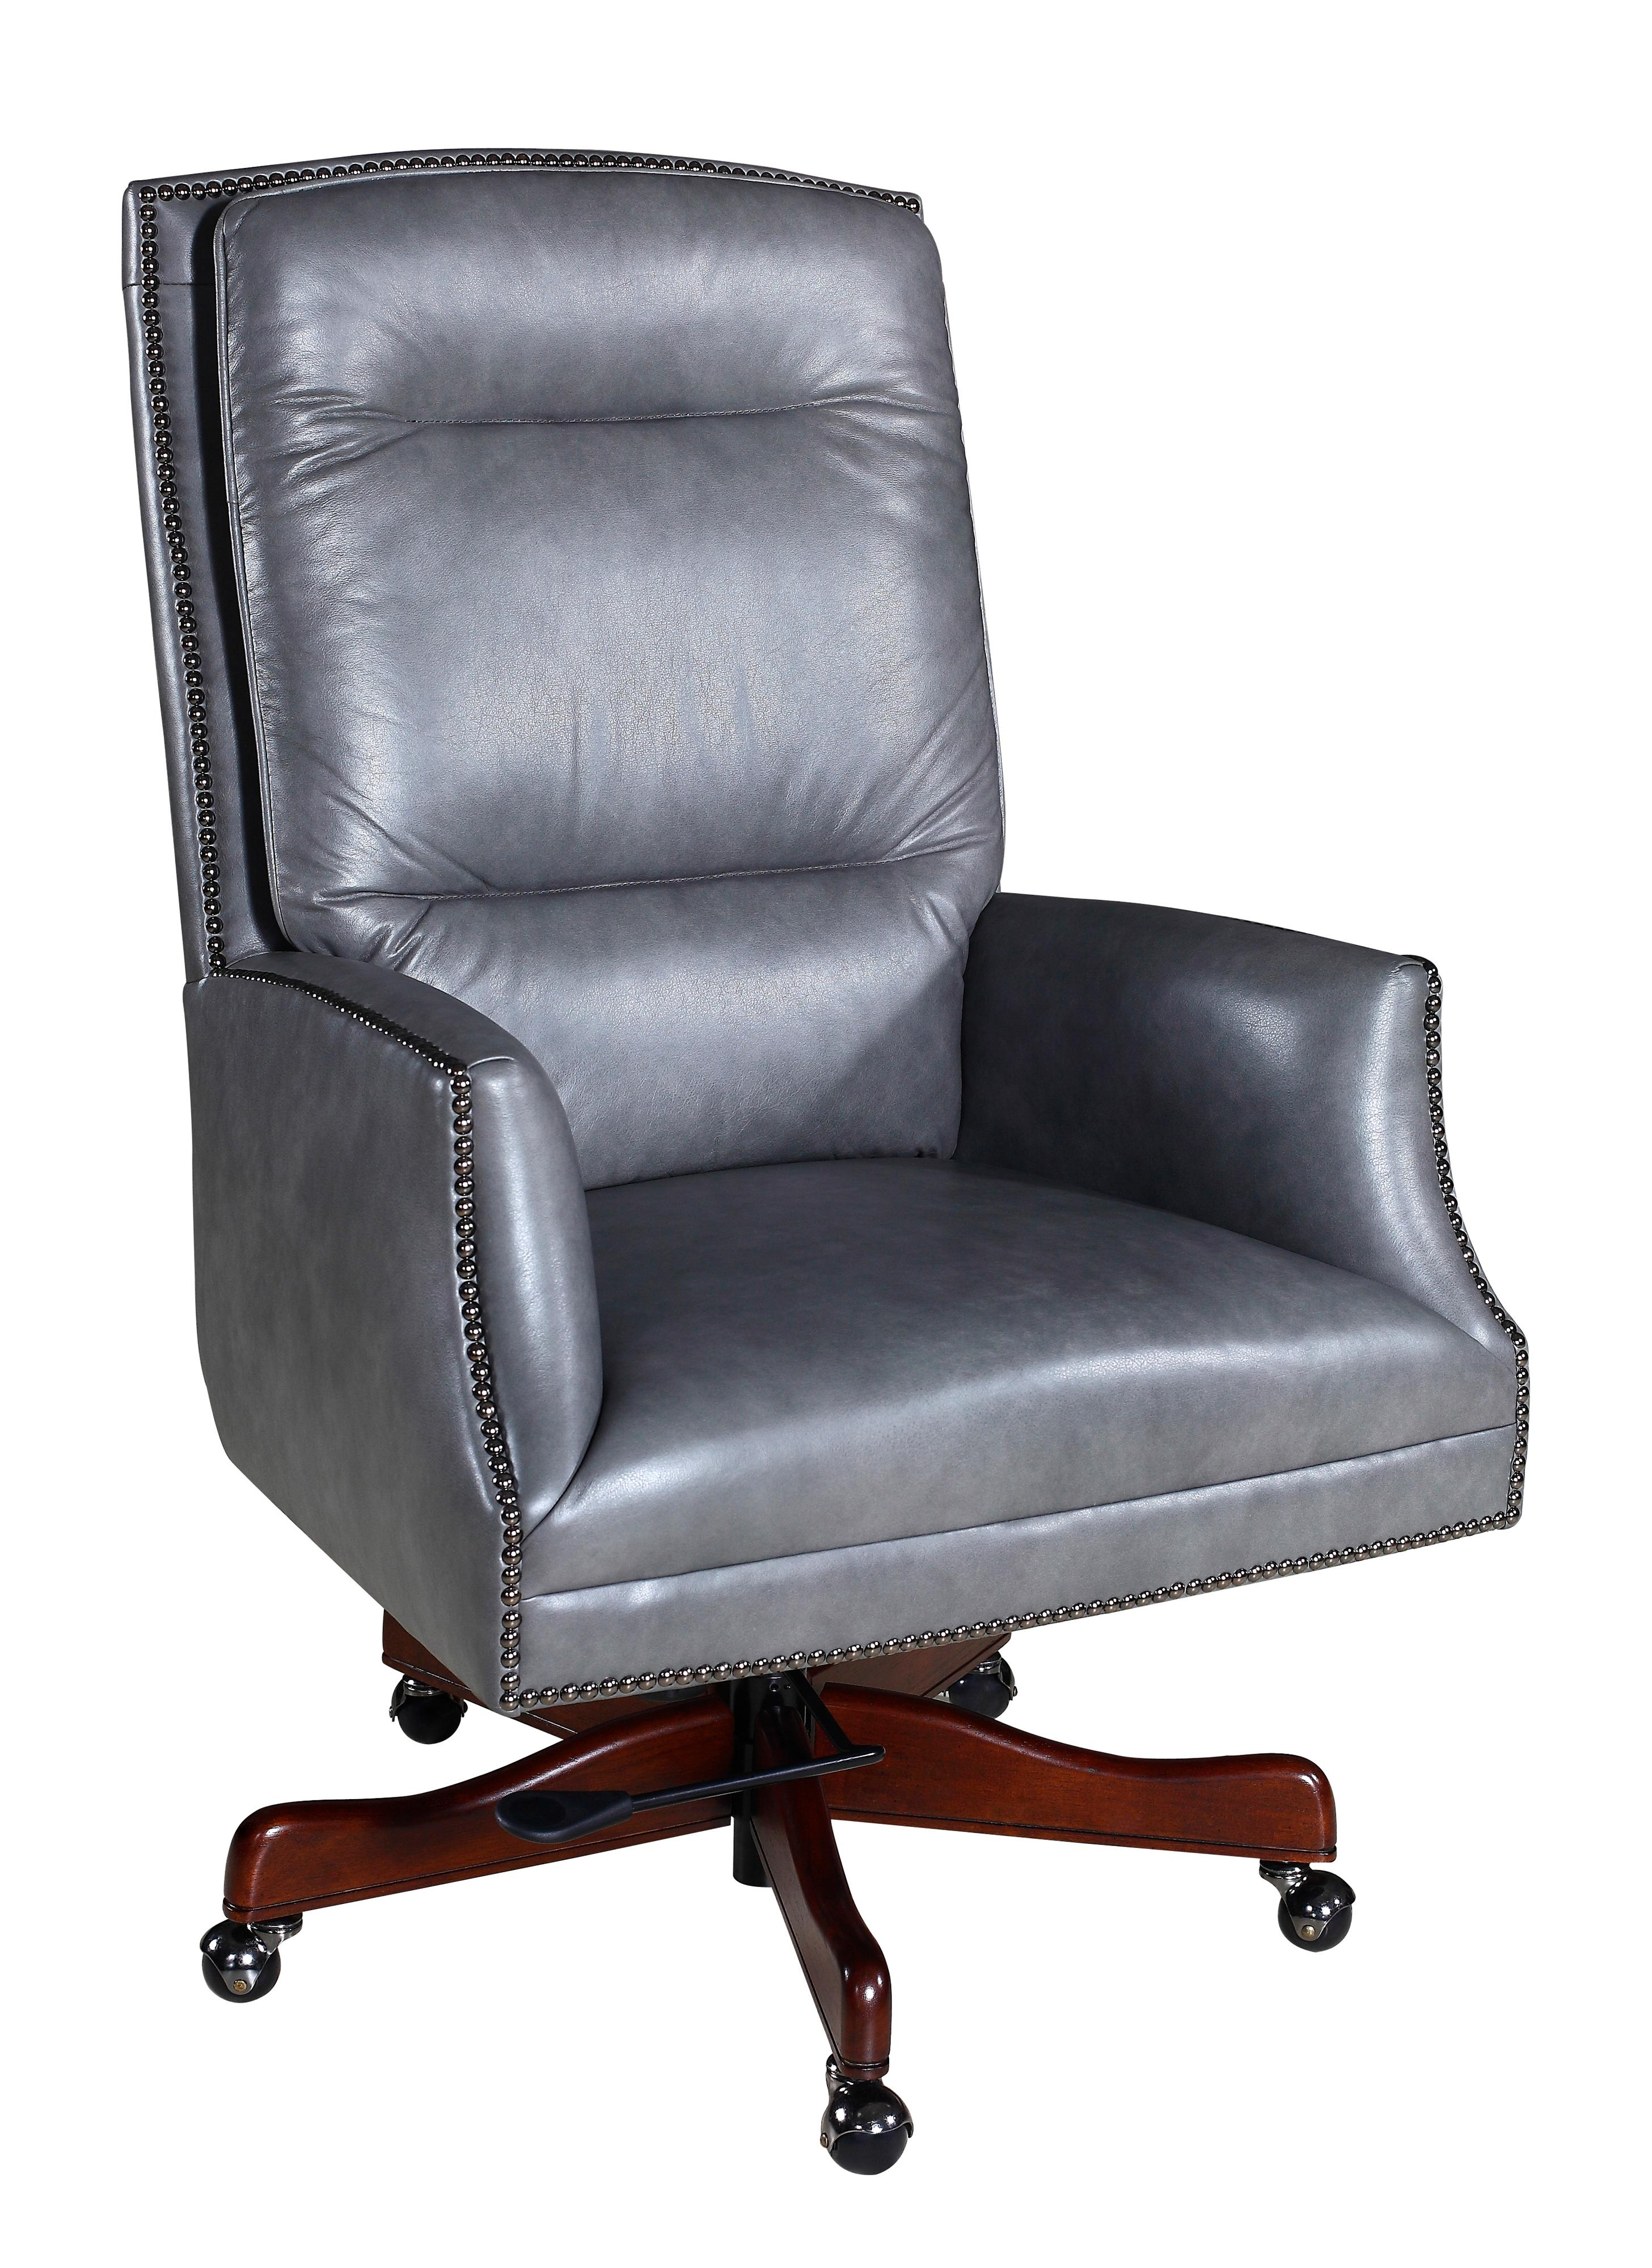 Hooker Furniture Executive Seating Contemporary Nailhead